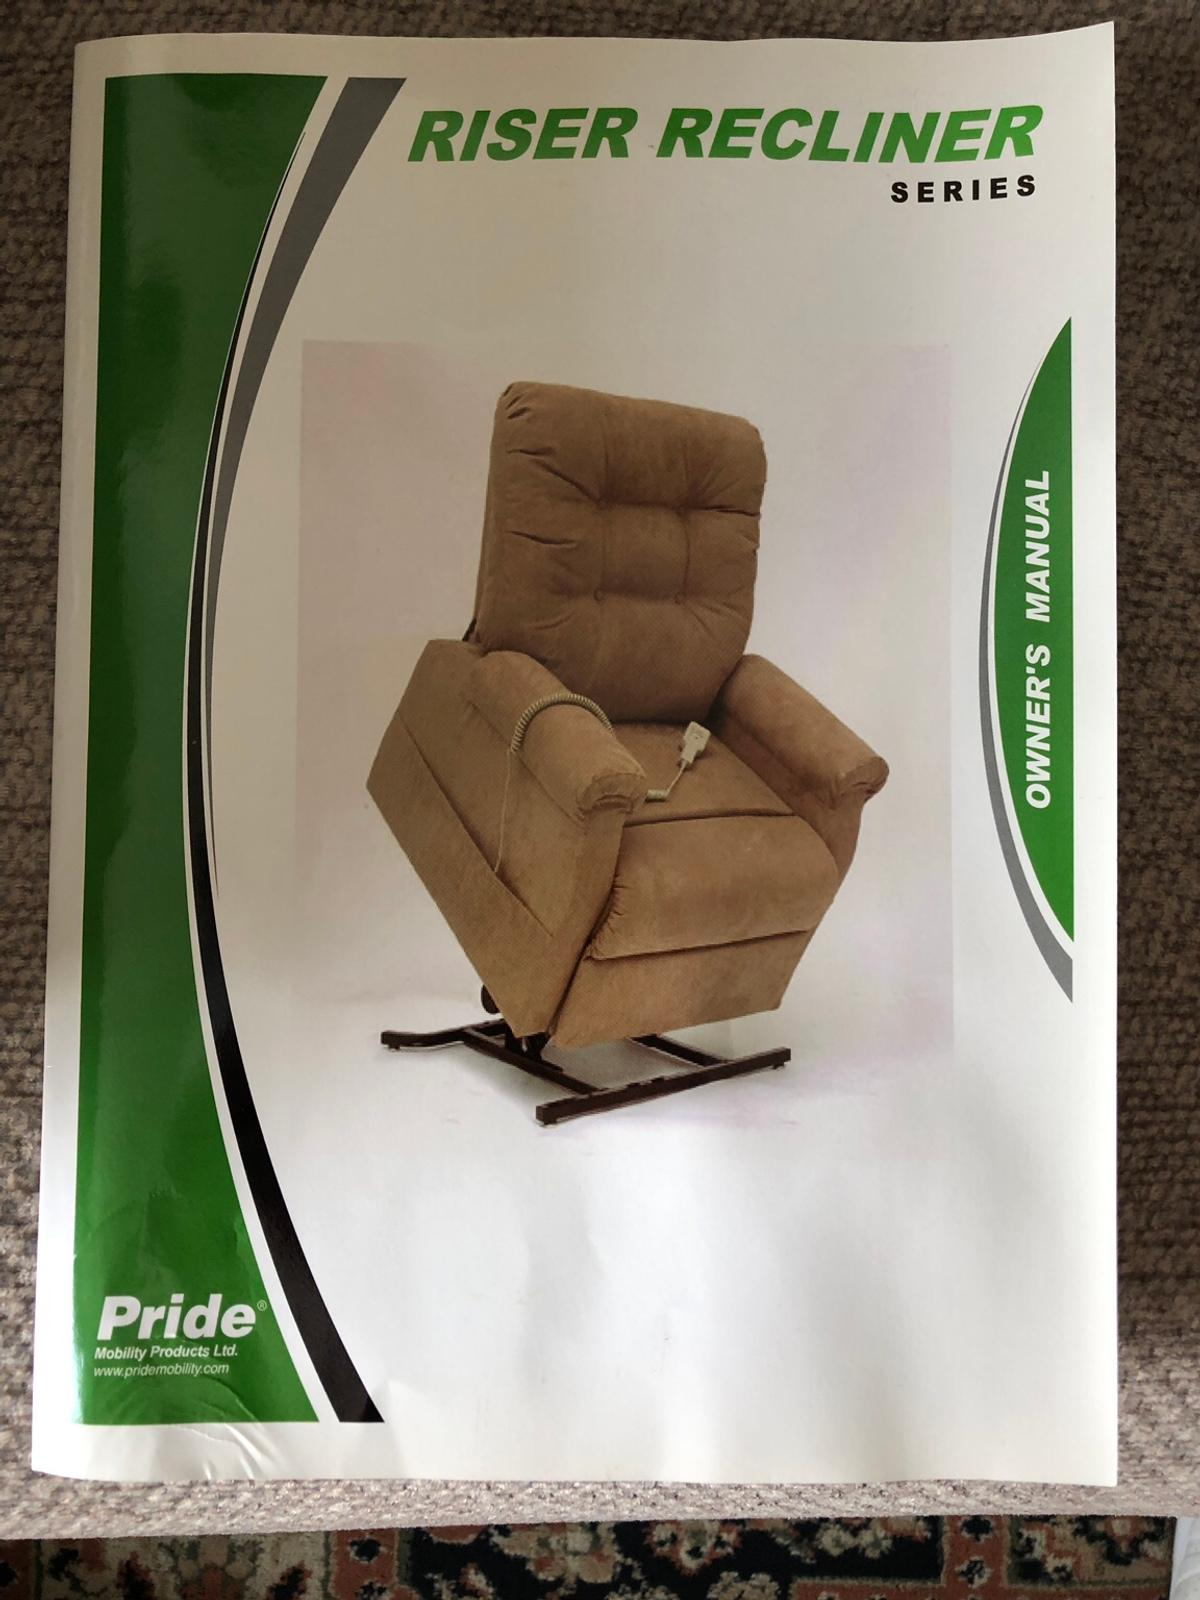 Swell Electric Riser Recliner Chair Inzonedesignstudio Interior Chair Design Inzonedesignstudiocom